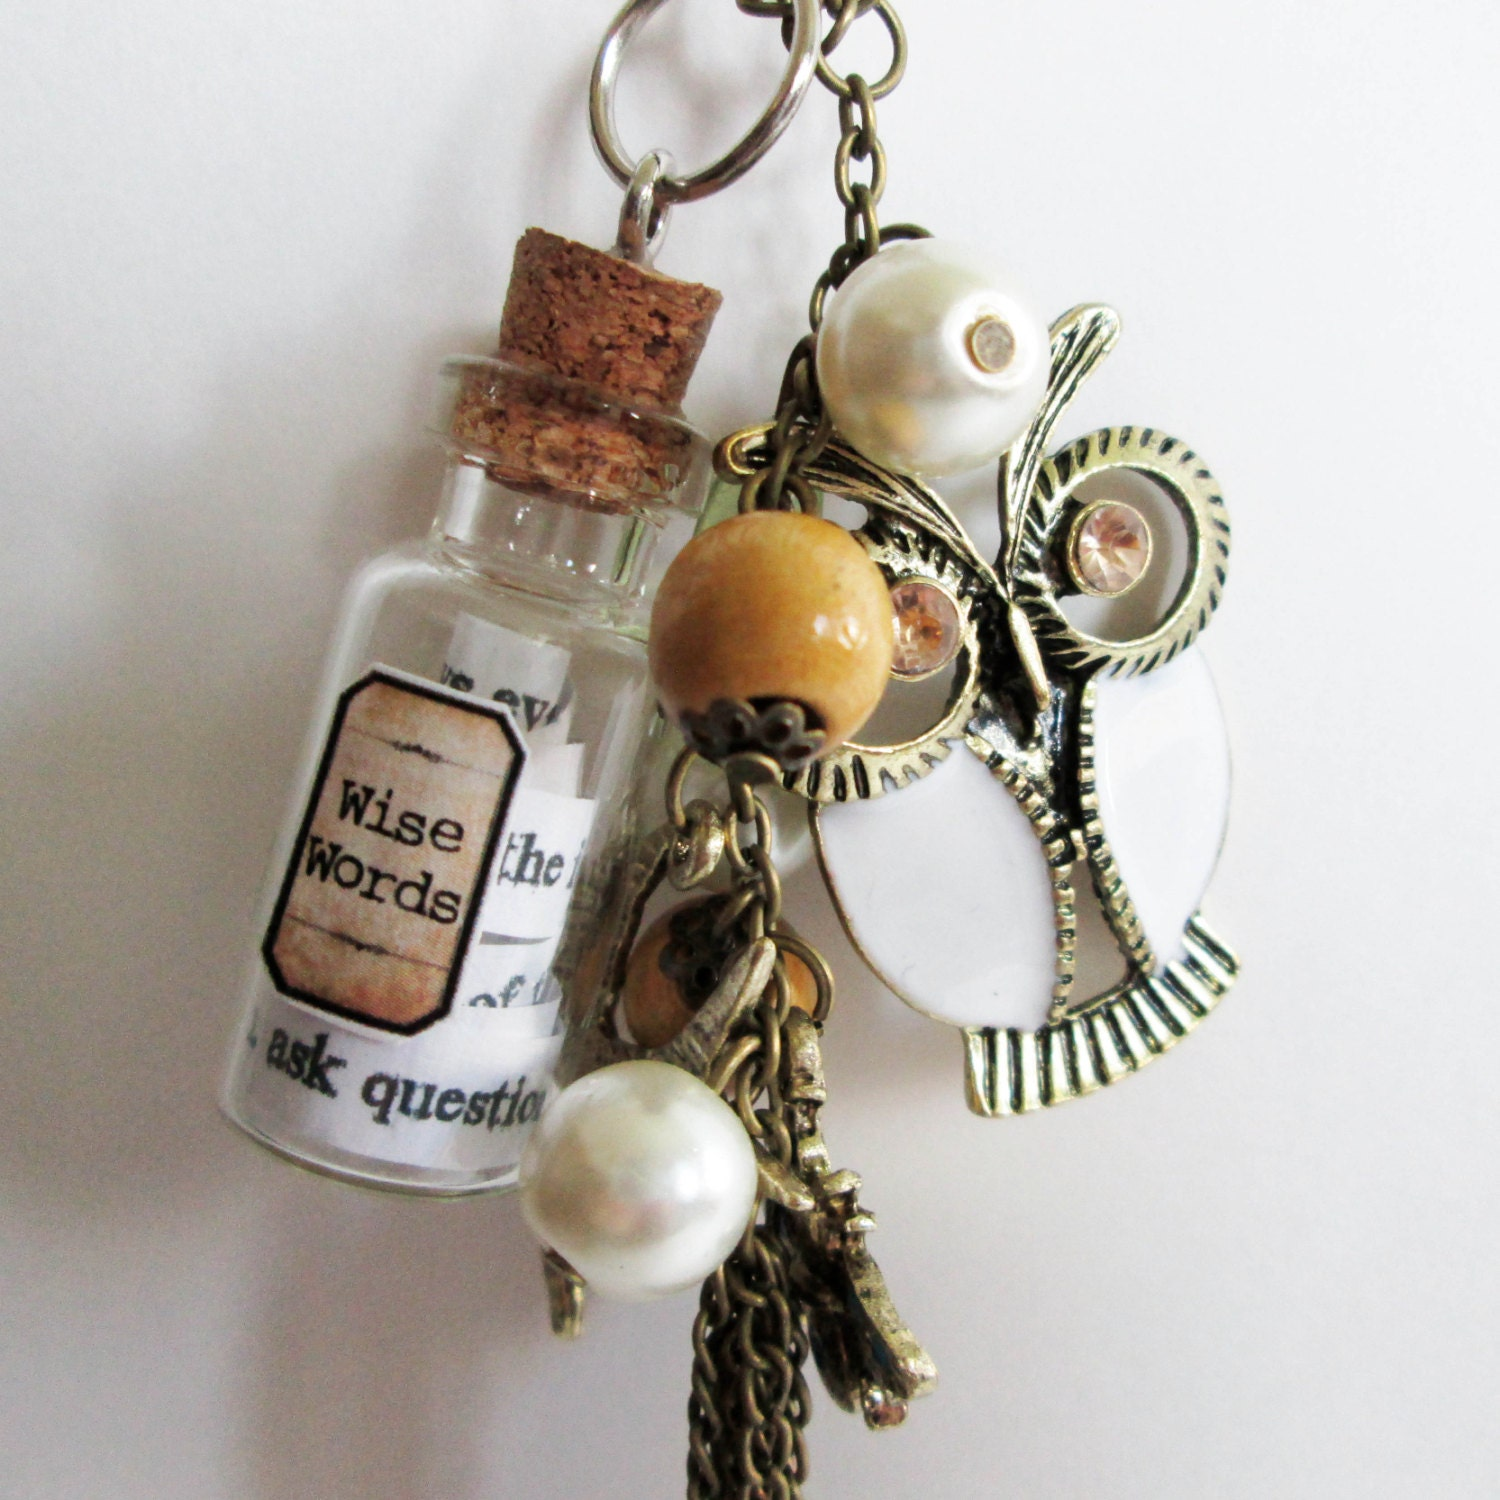 Wise Words Apothecary Bottle Necklace - BlueBirdsFlyJewels